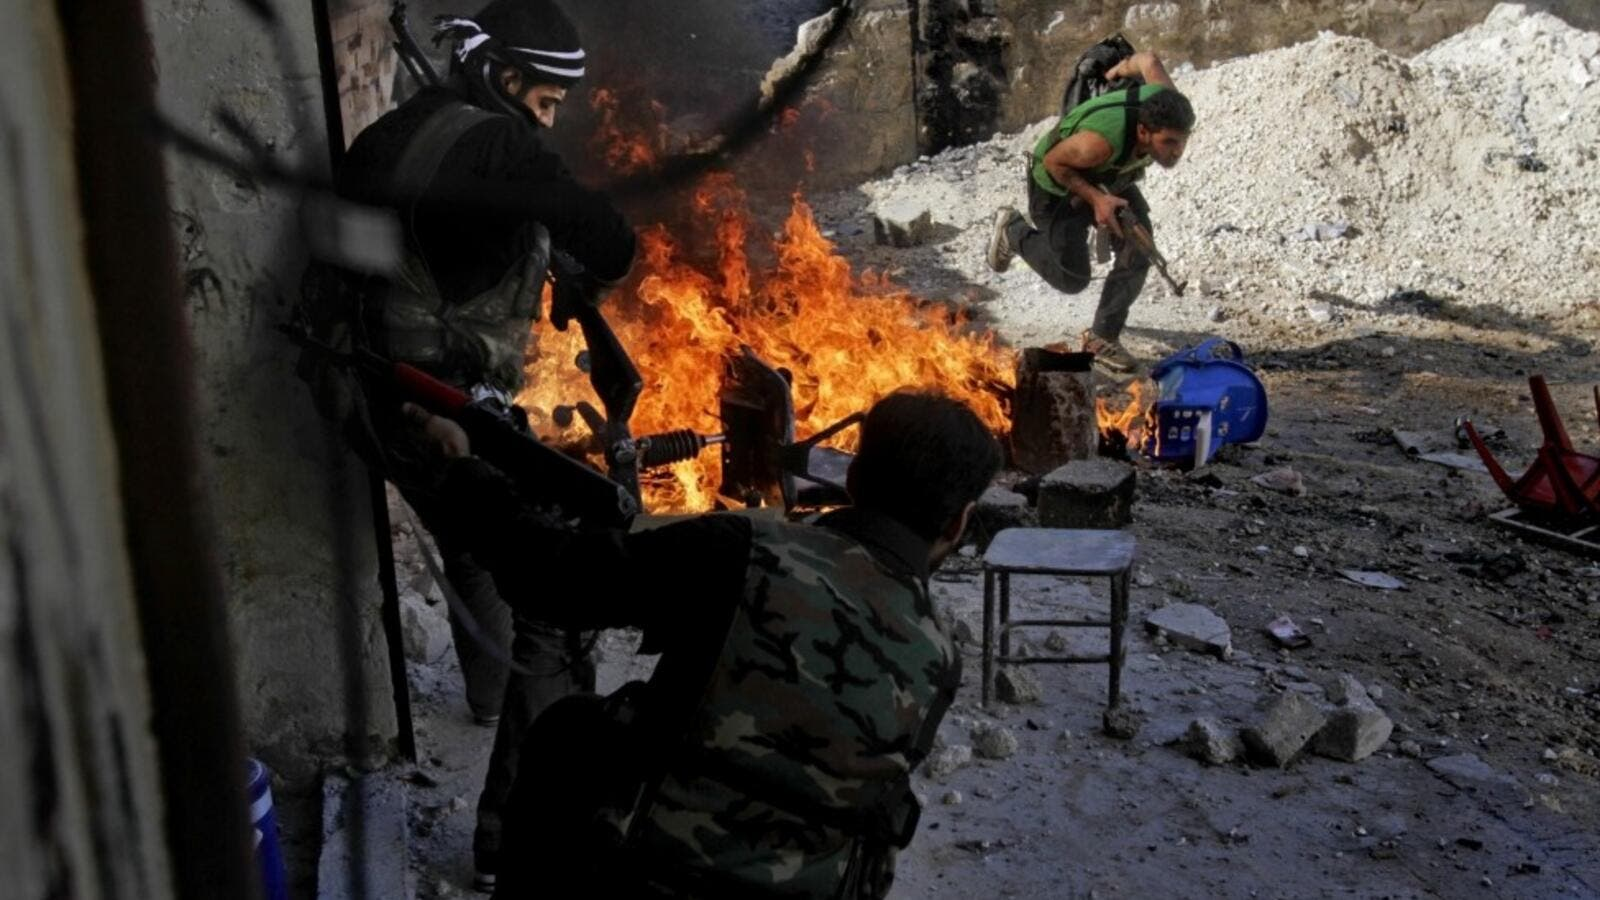 Syrian rebels of the Halab al-Shabah battalion under Al-Tawhid brigade take position during clashes with regime forces in Al-Amariya district of the northern city of Aleppo. (AFP/File)